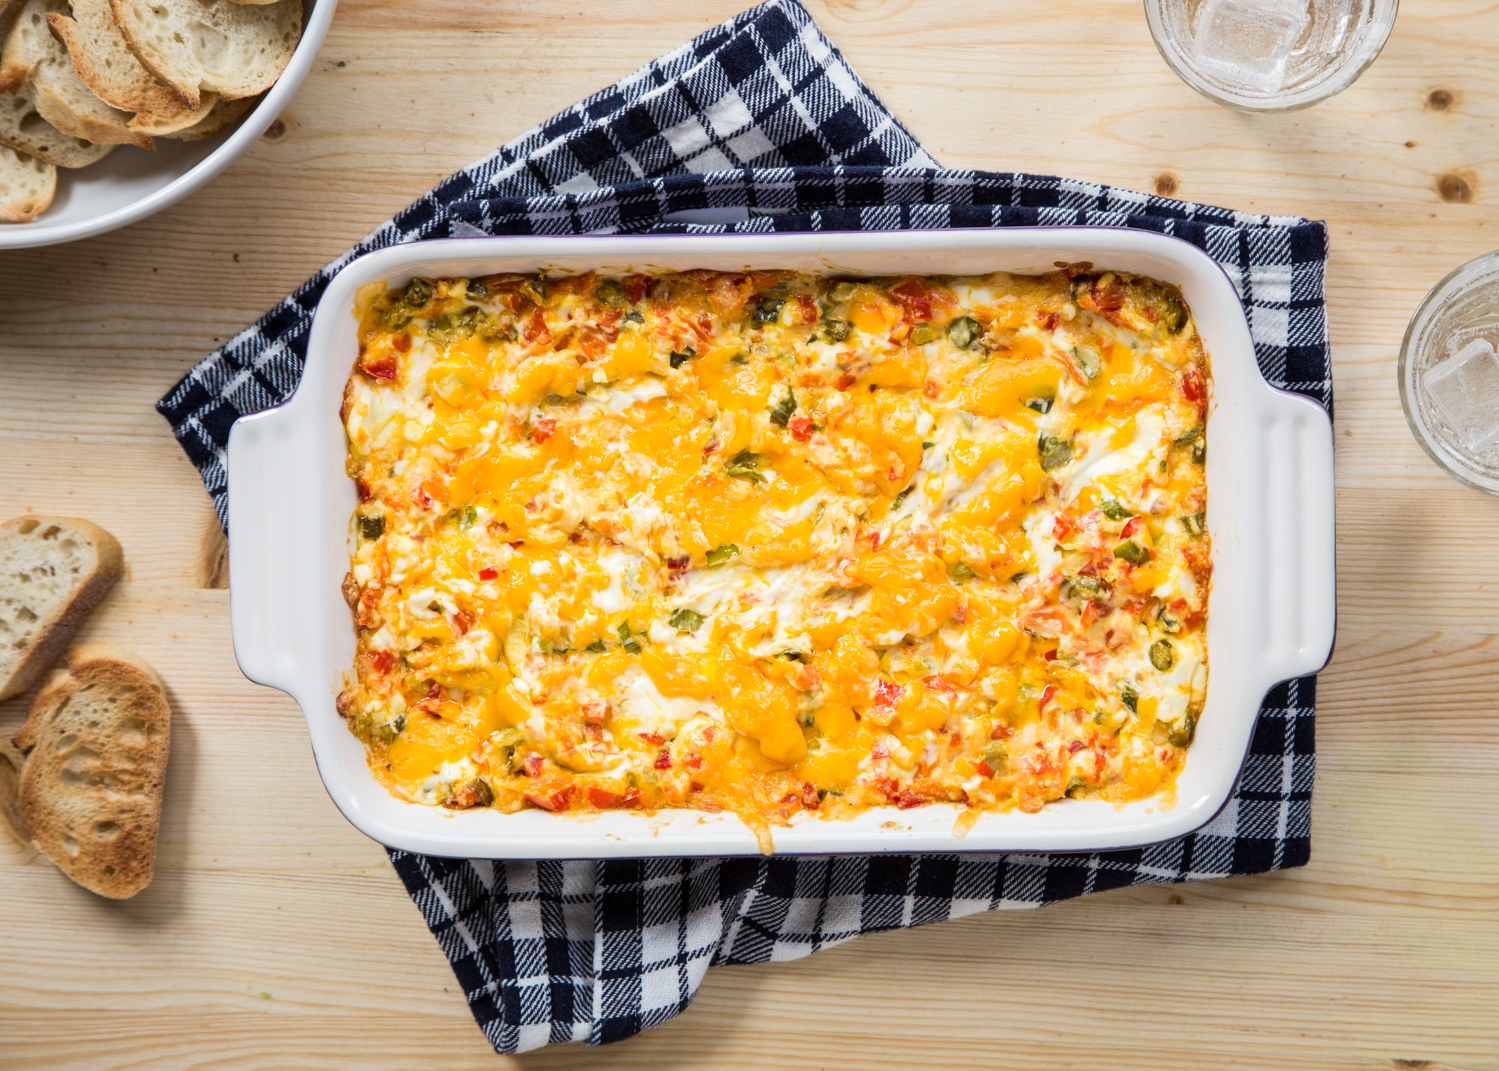 Baked Vegetable Cheese Dip is a great Spring appetizer for Easter, Mother's Day or a graduation party